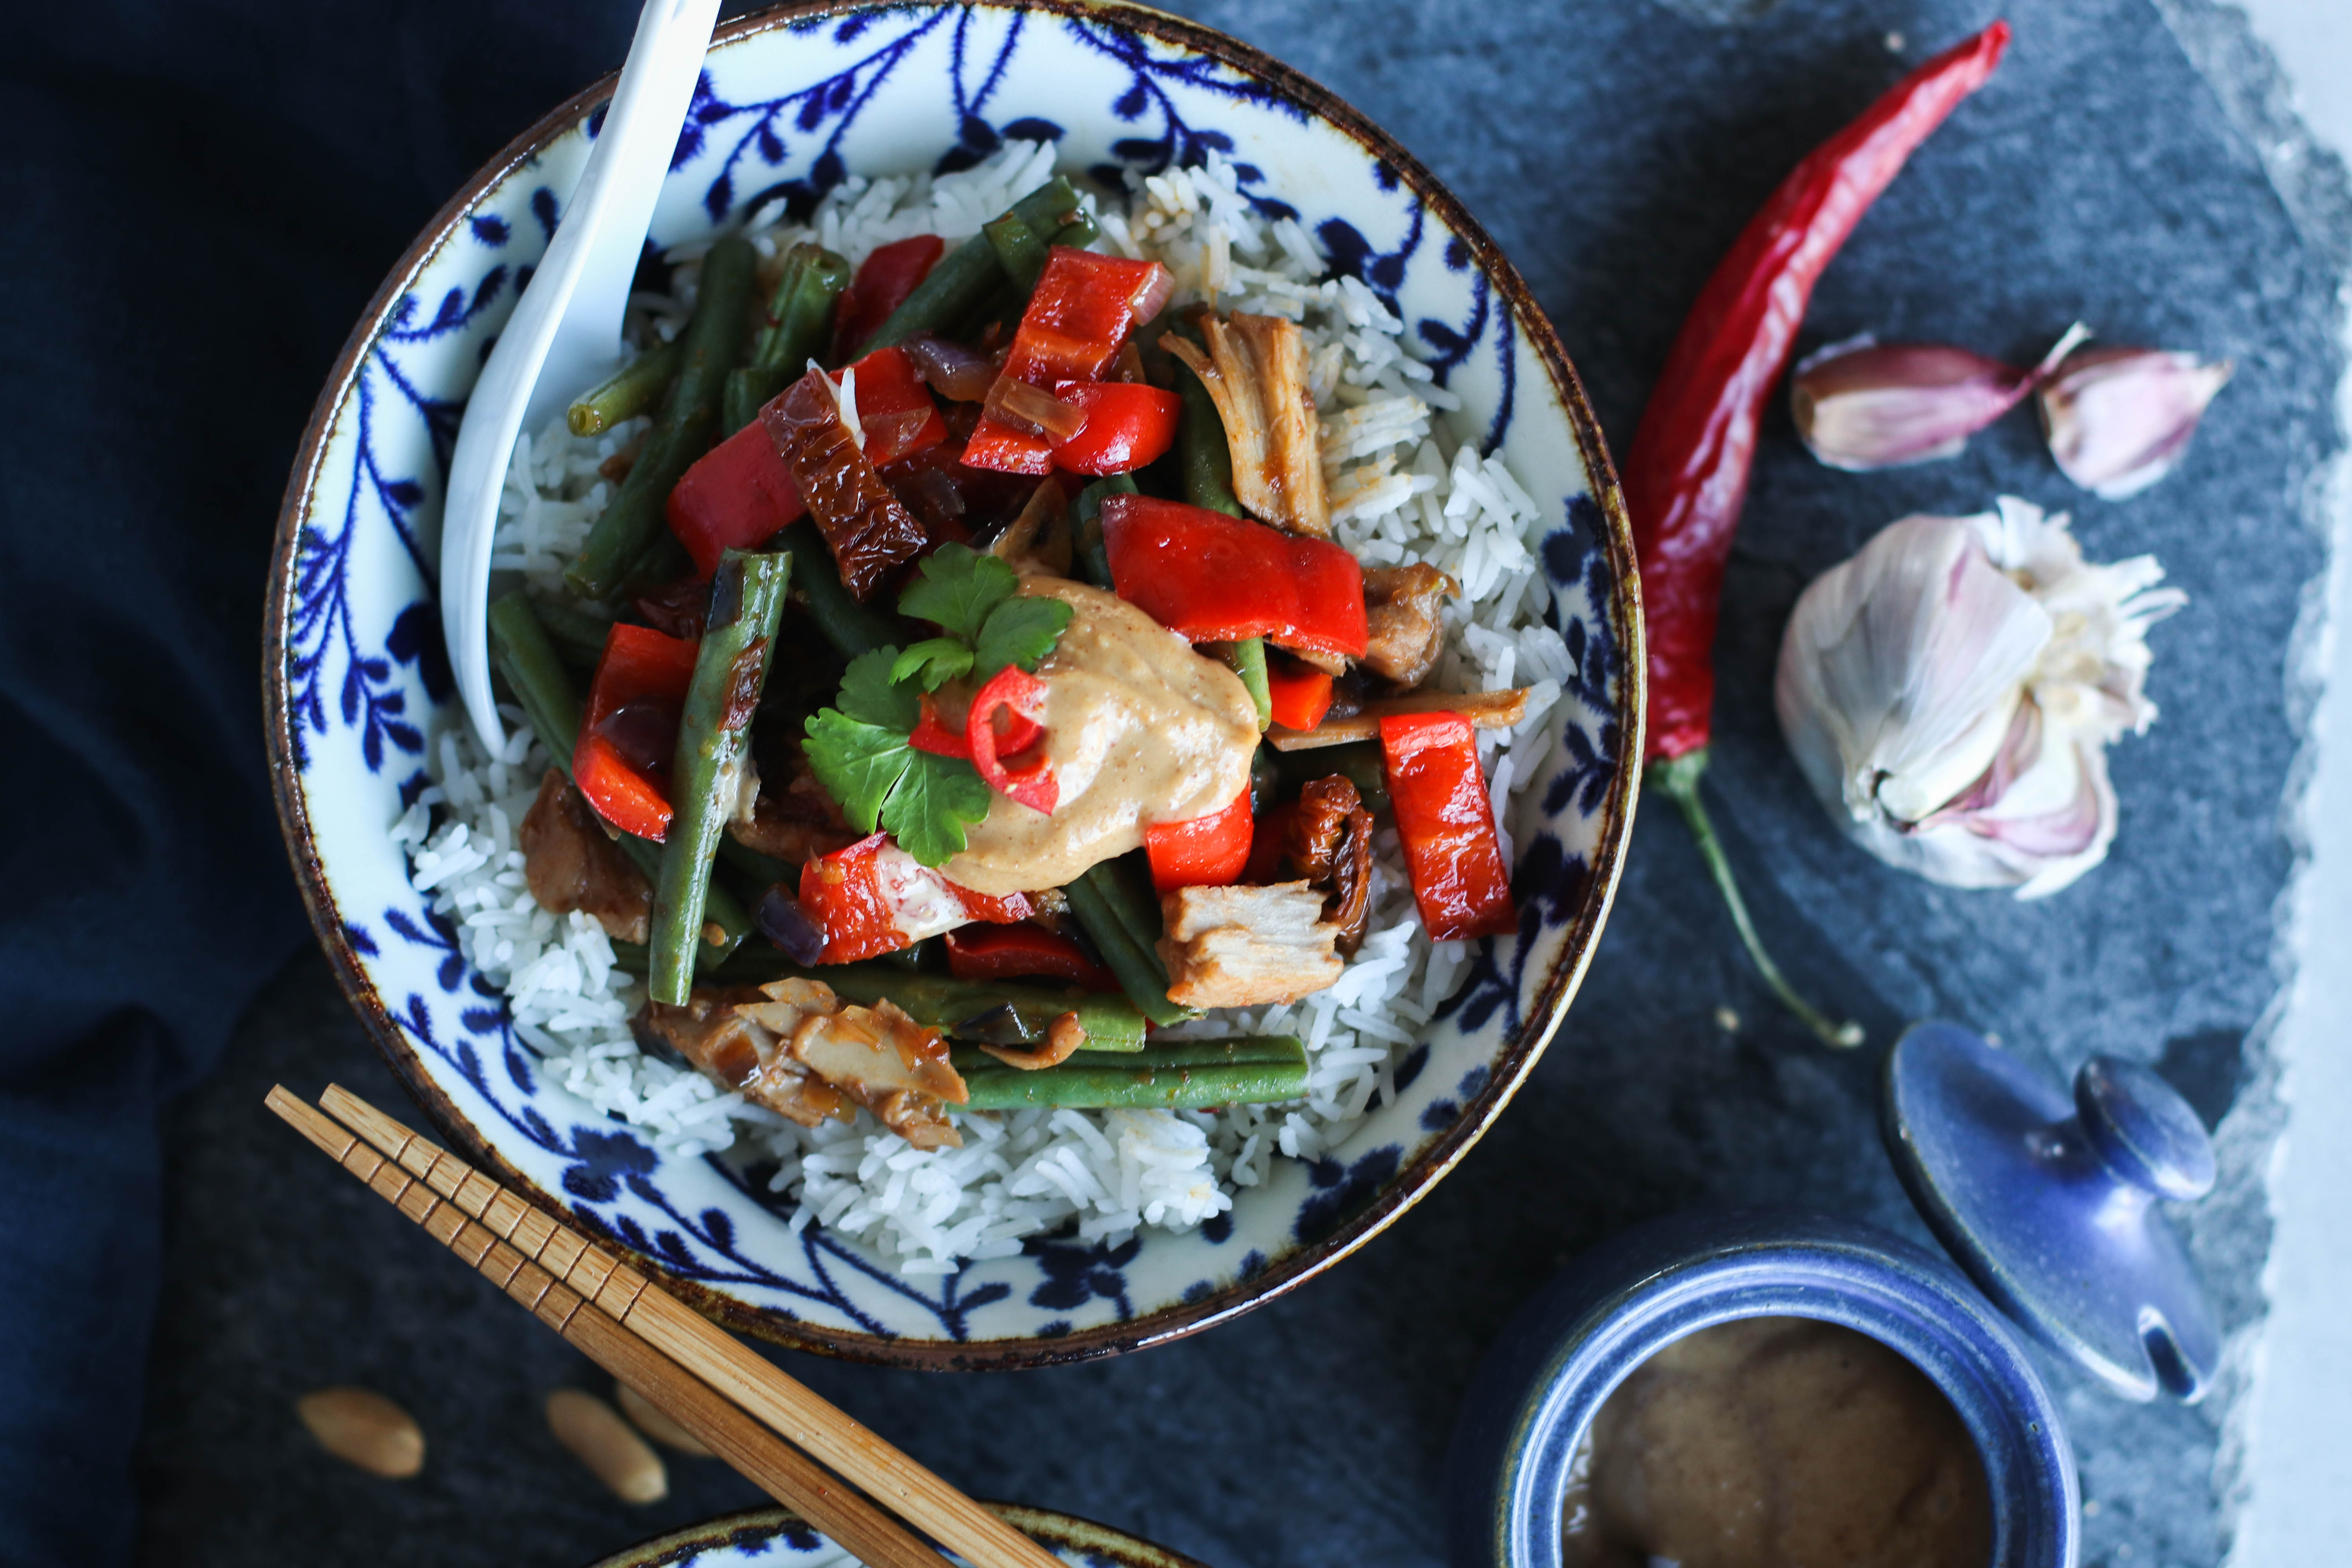 Vegan Gado Gado with Sun-dried Tomatoes | Pick Up Limes | Nourish the Cells & the Soul